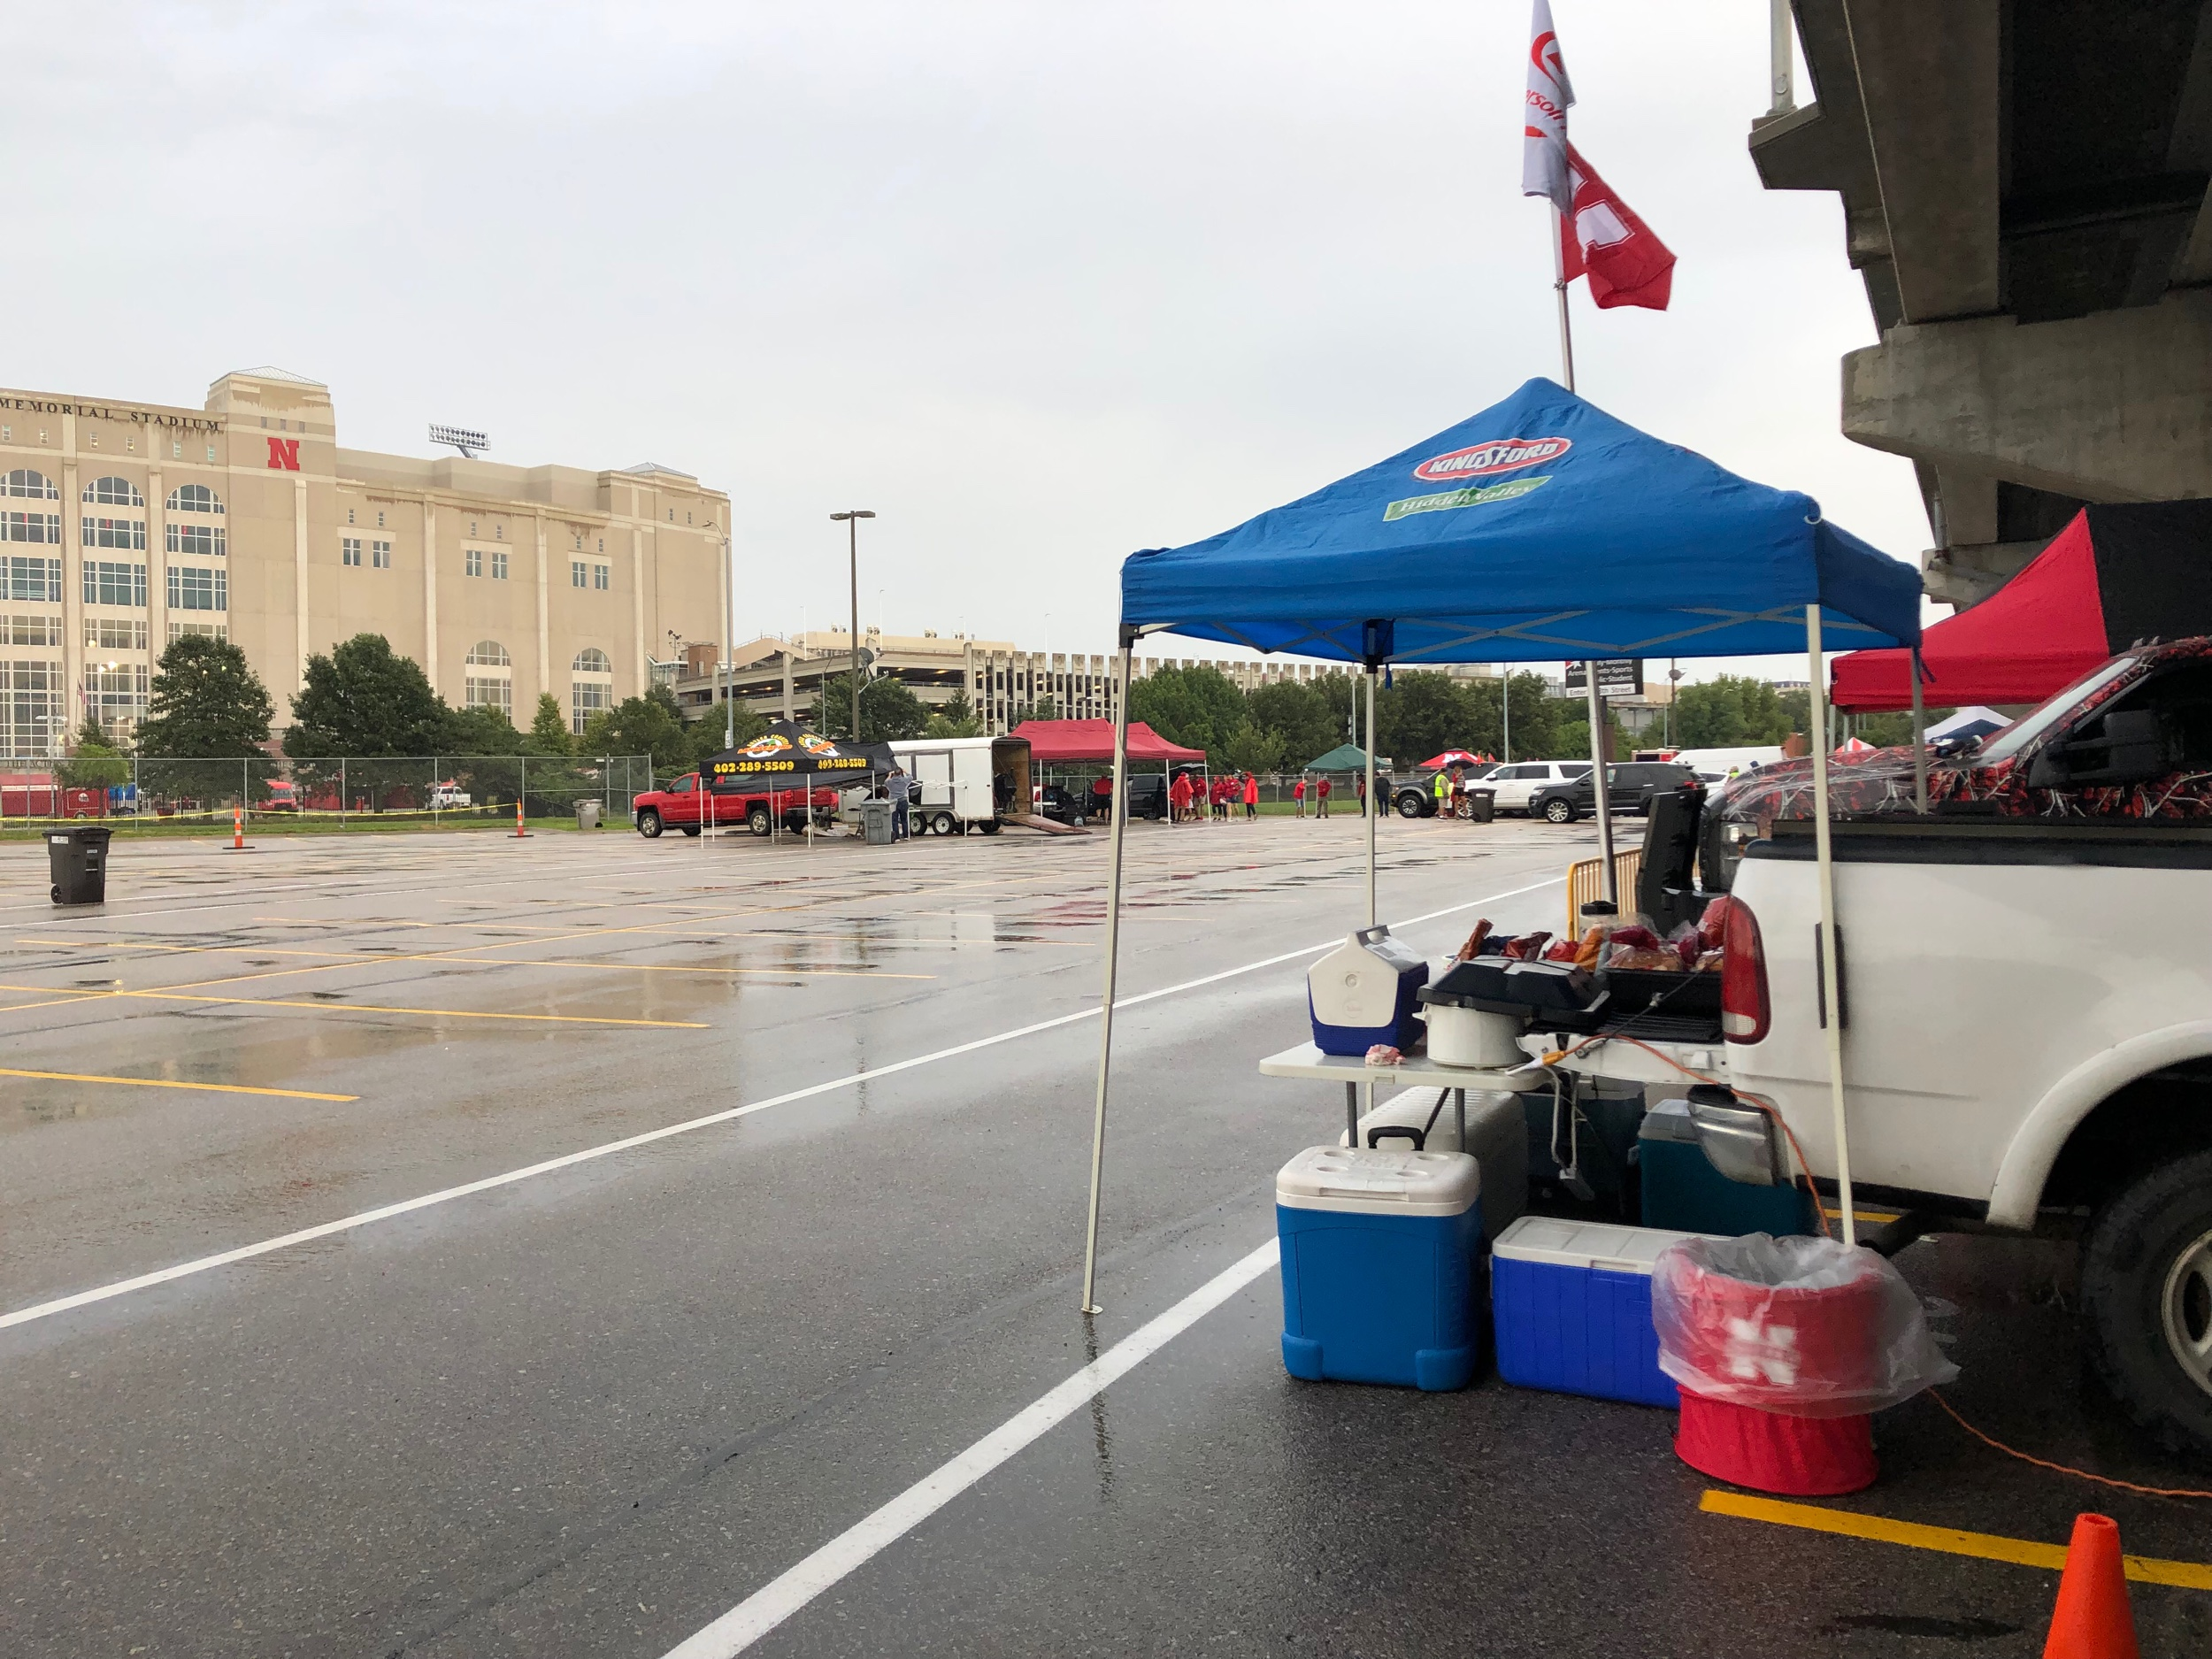 The committee few braving the rain to tailgate